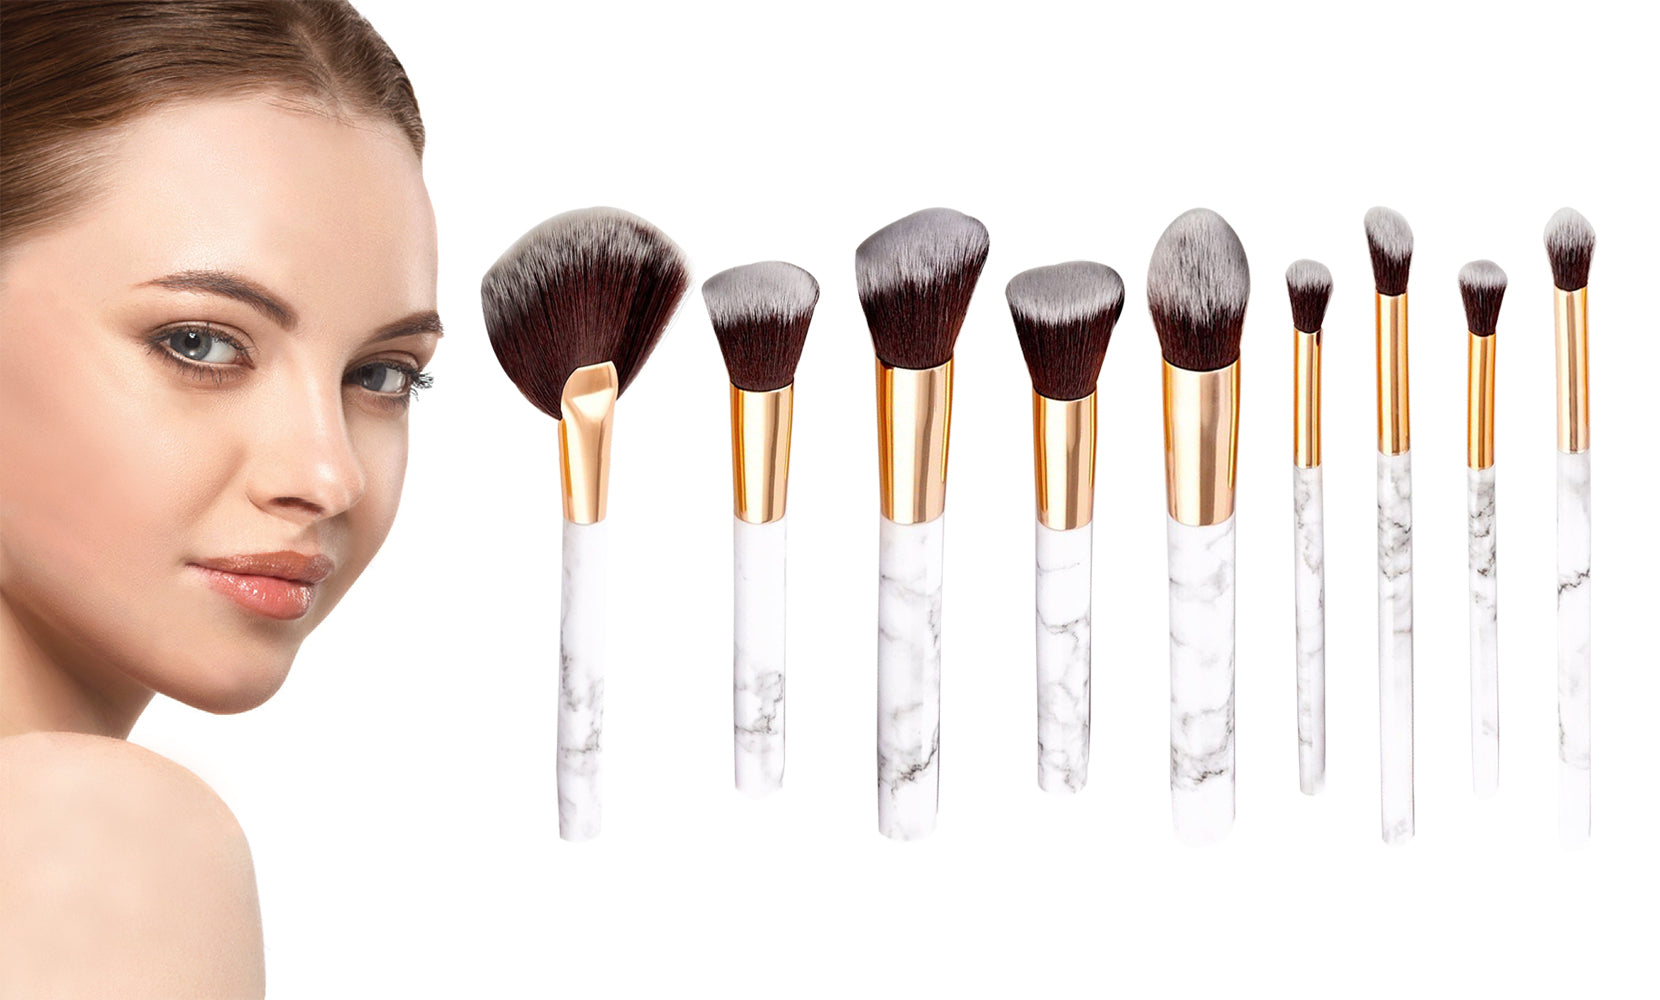 9-Piece Set: Professional Marble-Look Makeup Brushes